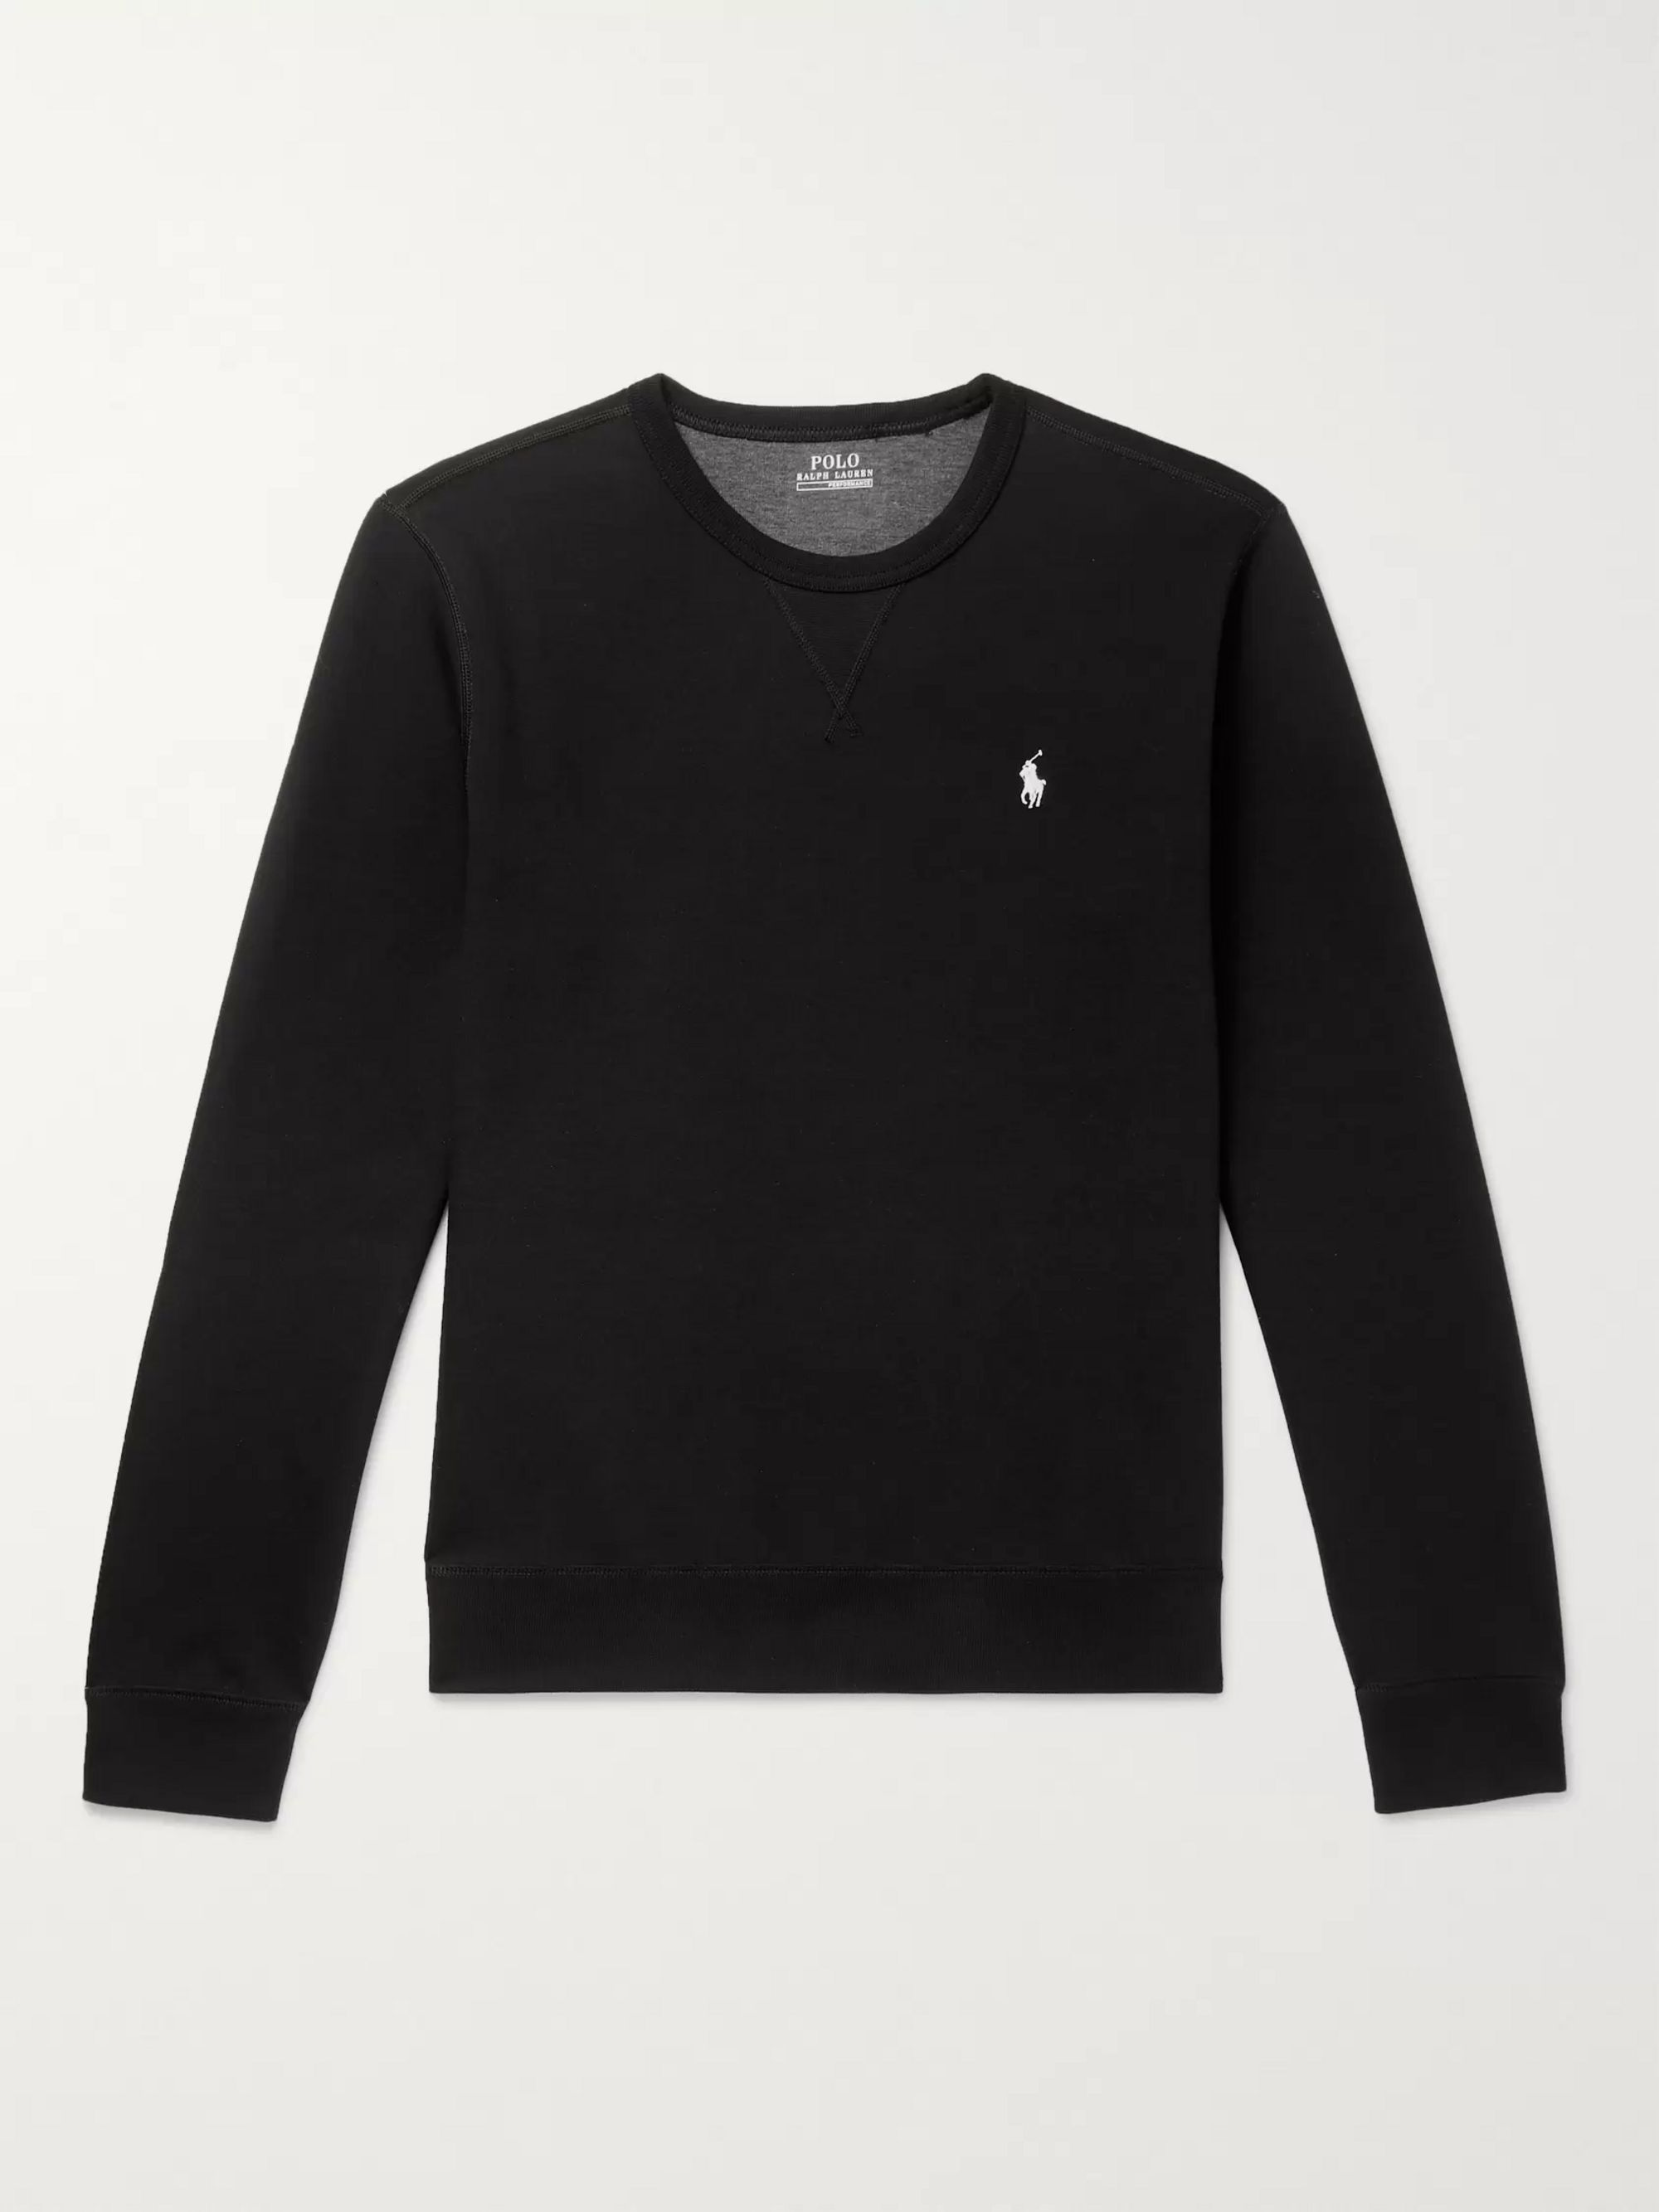 Logo Embroidered Jersey Sweatshirt by Polo Ralph Lauren